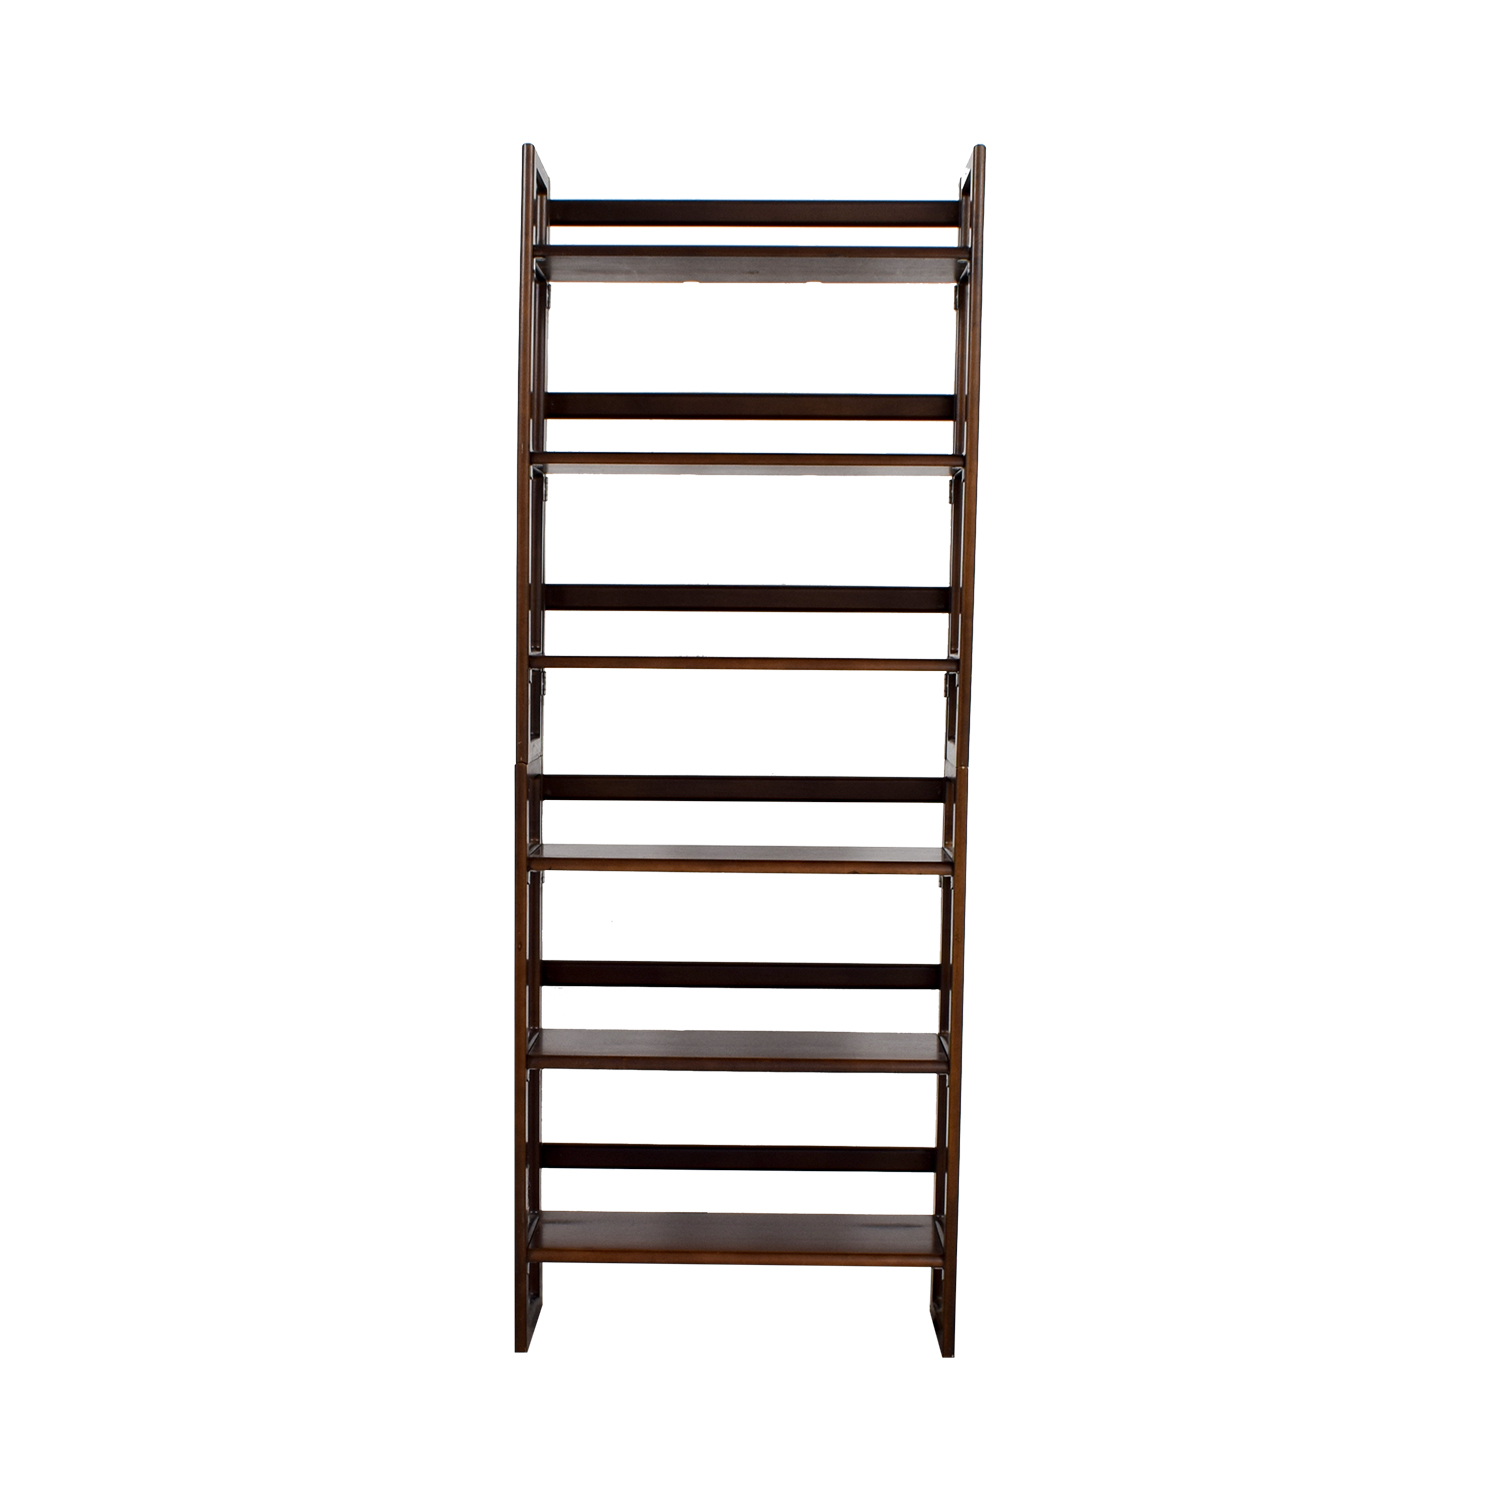 buy Cherry Wood Six Shelf Bookshelf Bookcases & Shelving